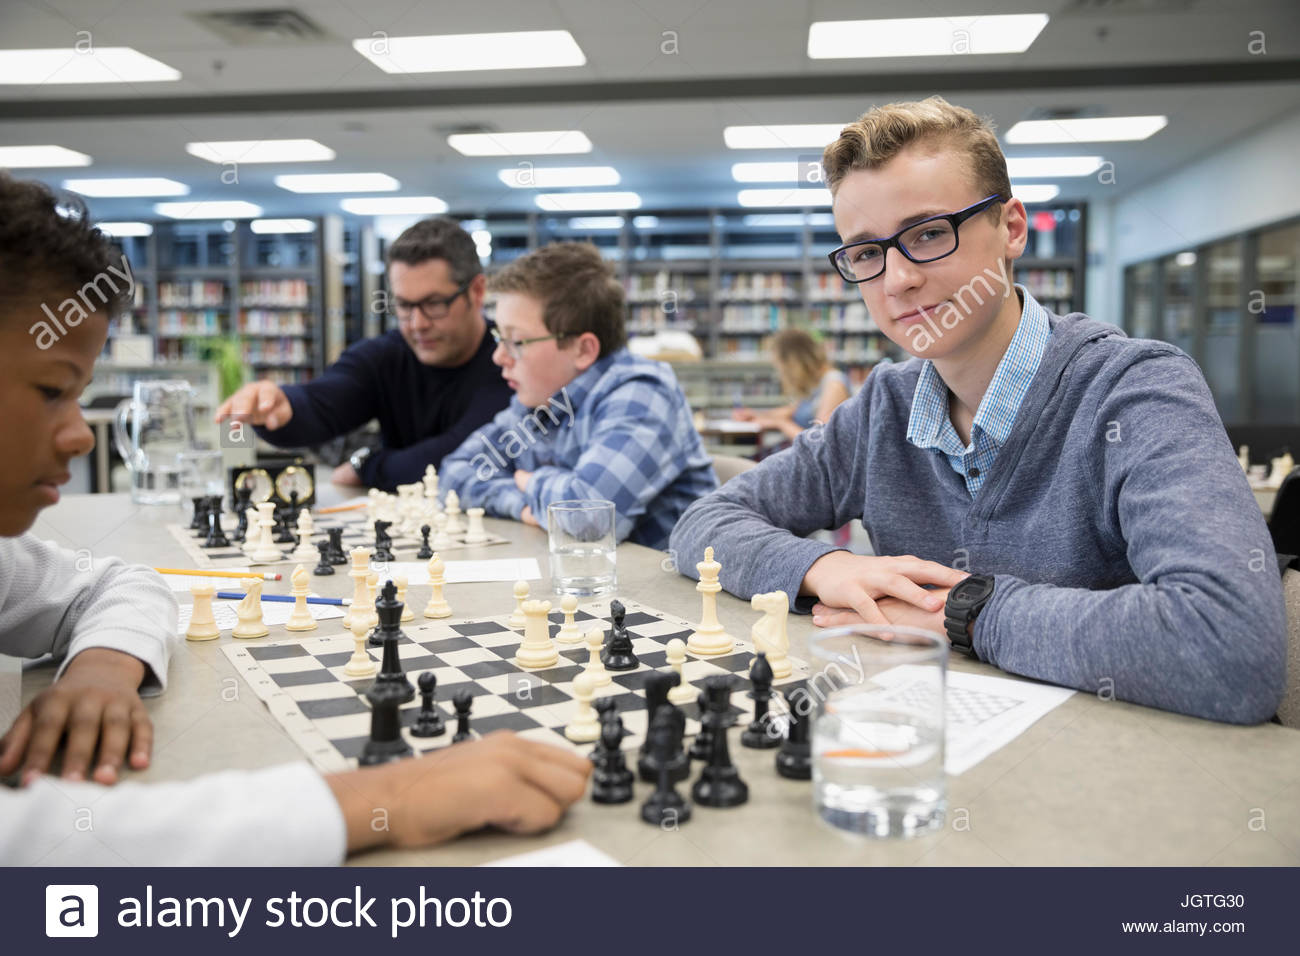 Portrait confident boy middle school student playing chess in chess club library - Stock Image